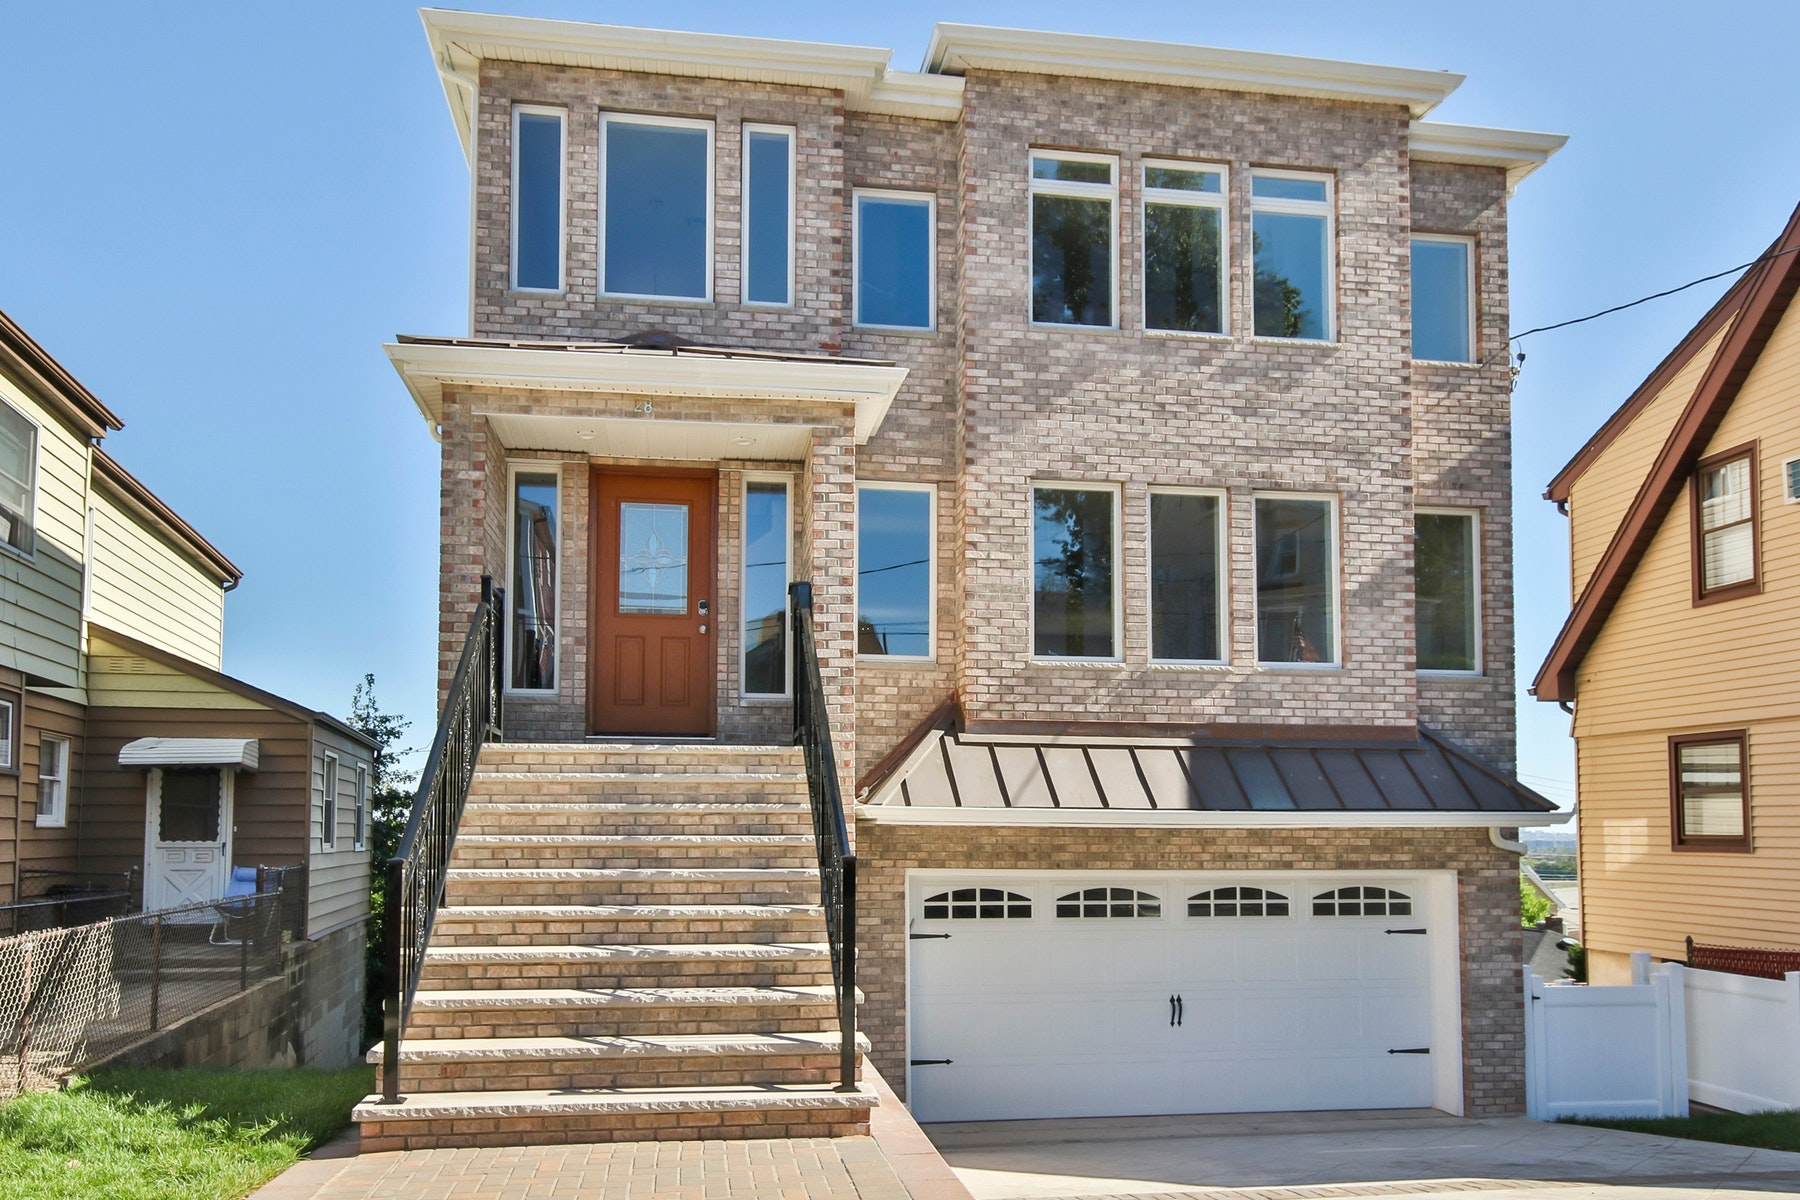 Single Family Home for Rent at Rental New Construction with New York City Views 28 Prospect Terrace East Rutherford, New Jersey 07073 United States